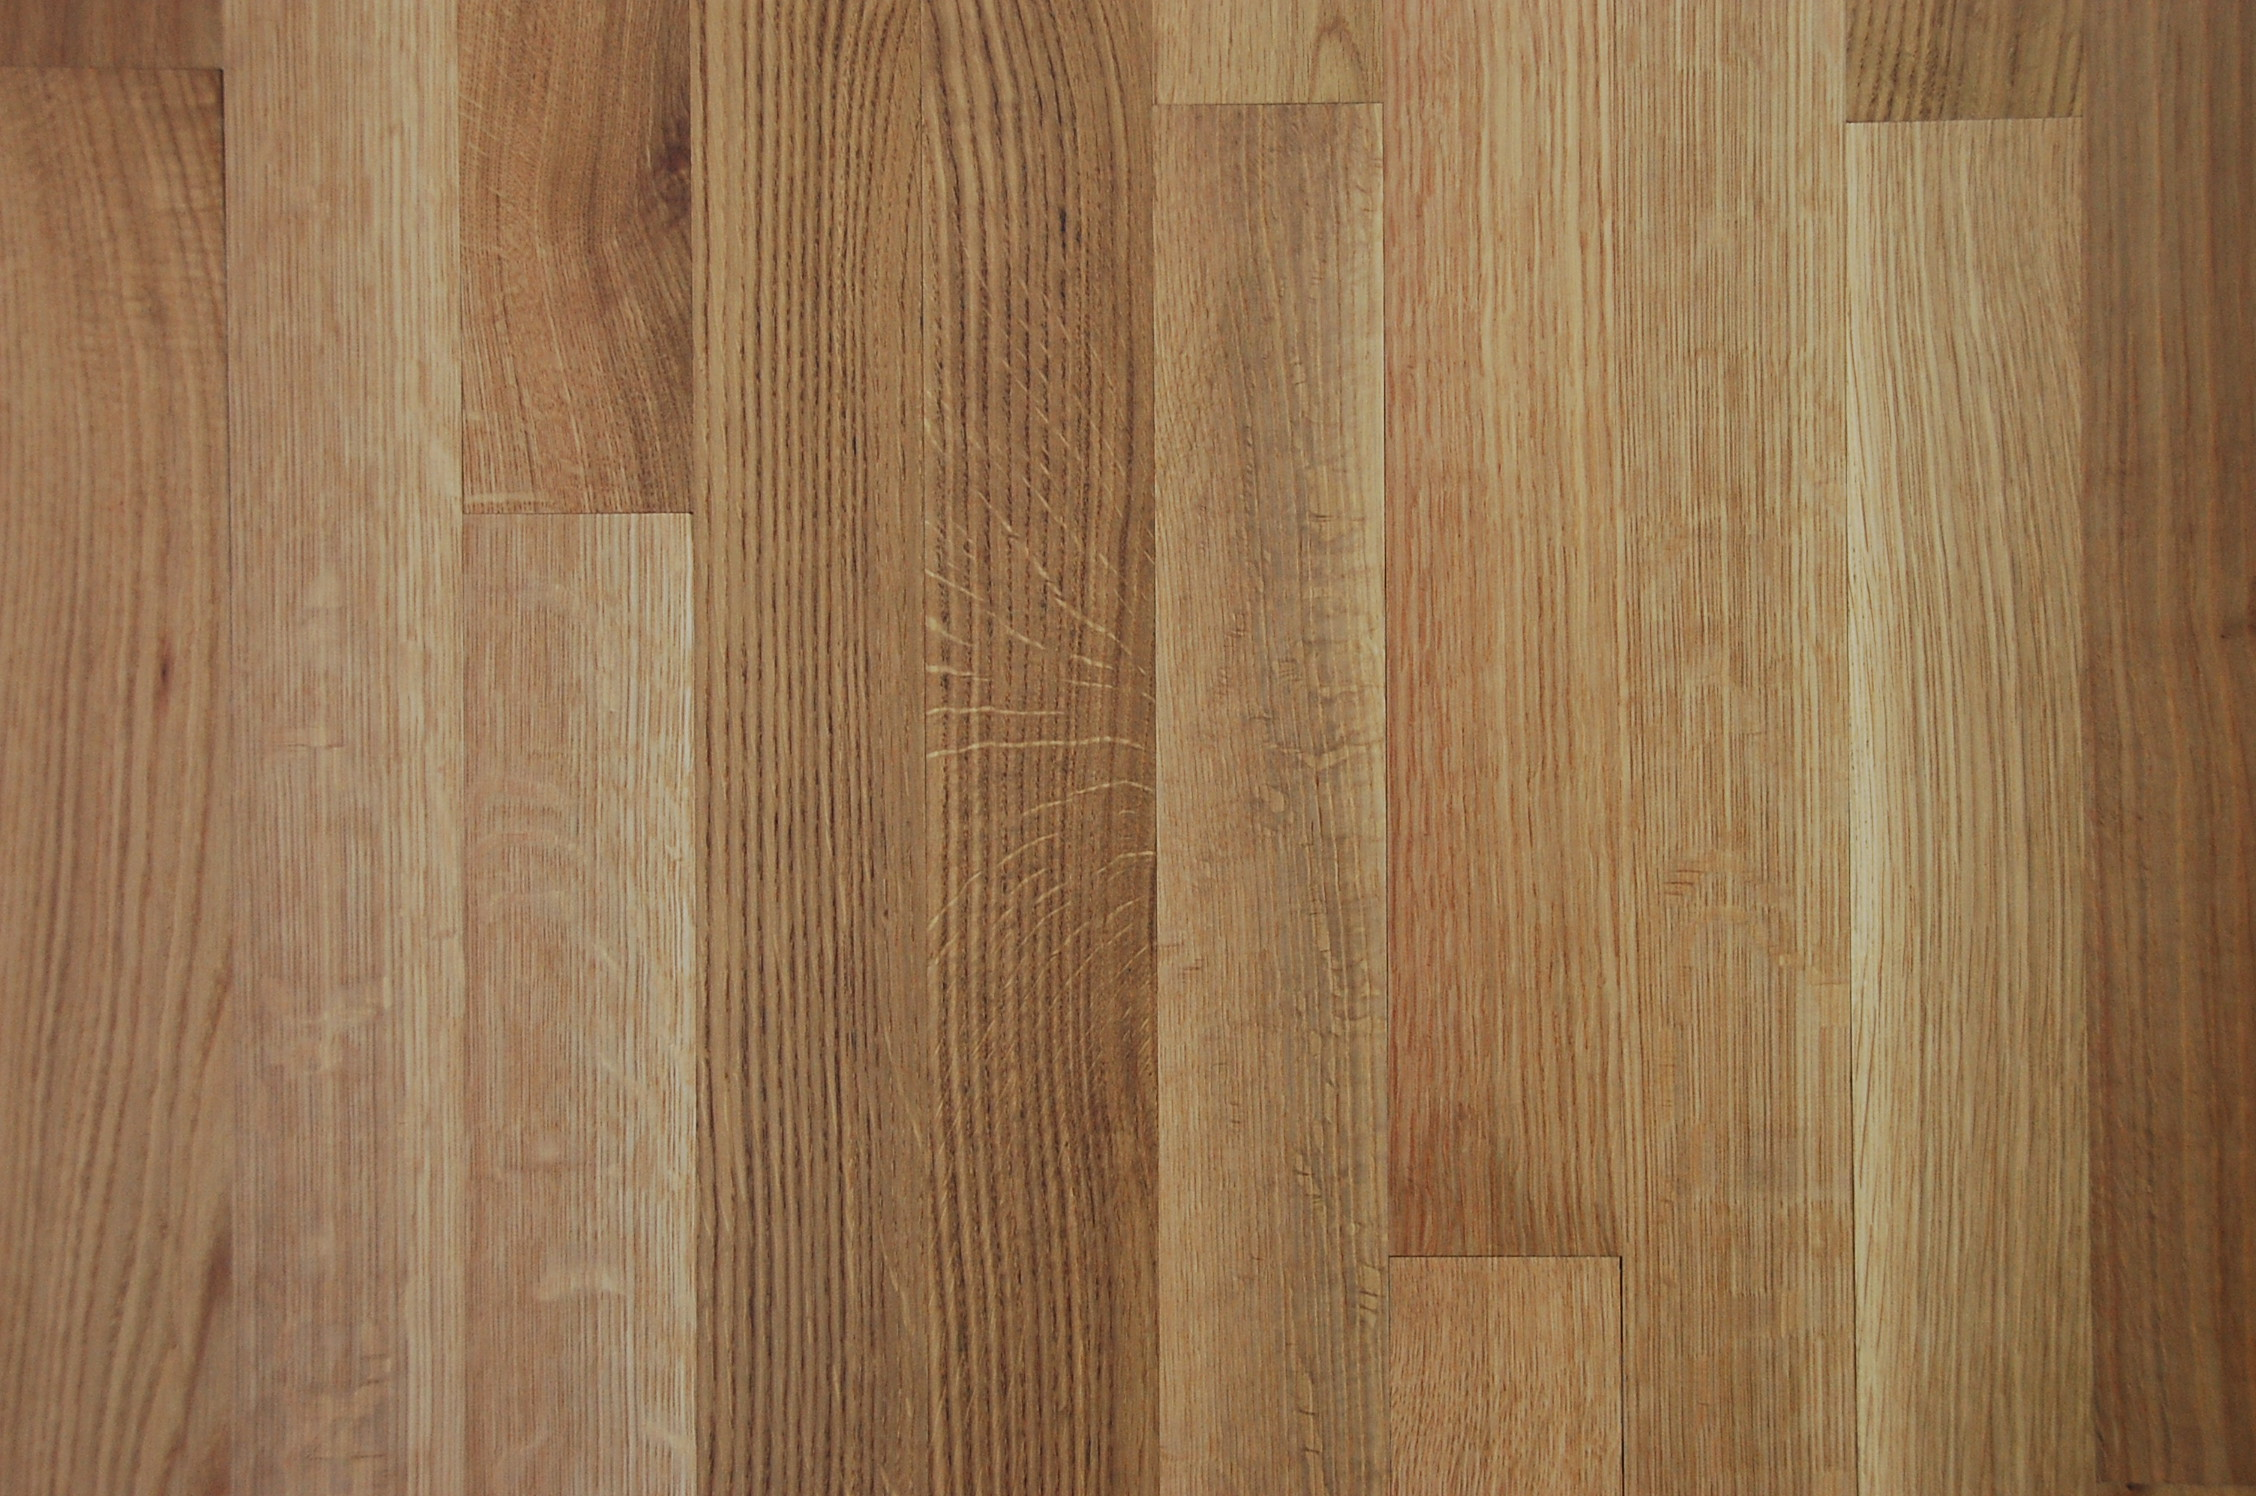 Rift SawnSelect White Oak - Starting at $13.45 sq/ft